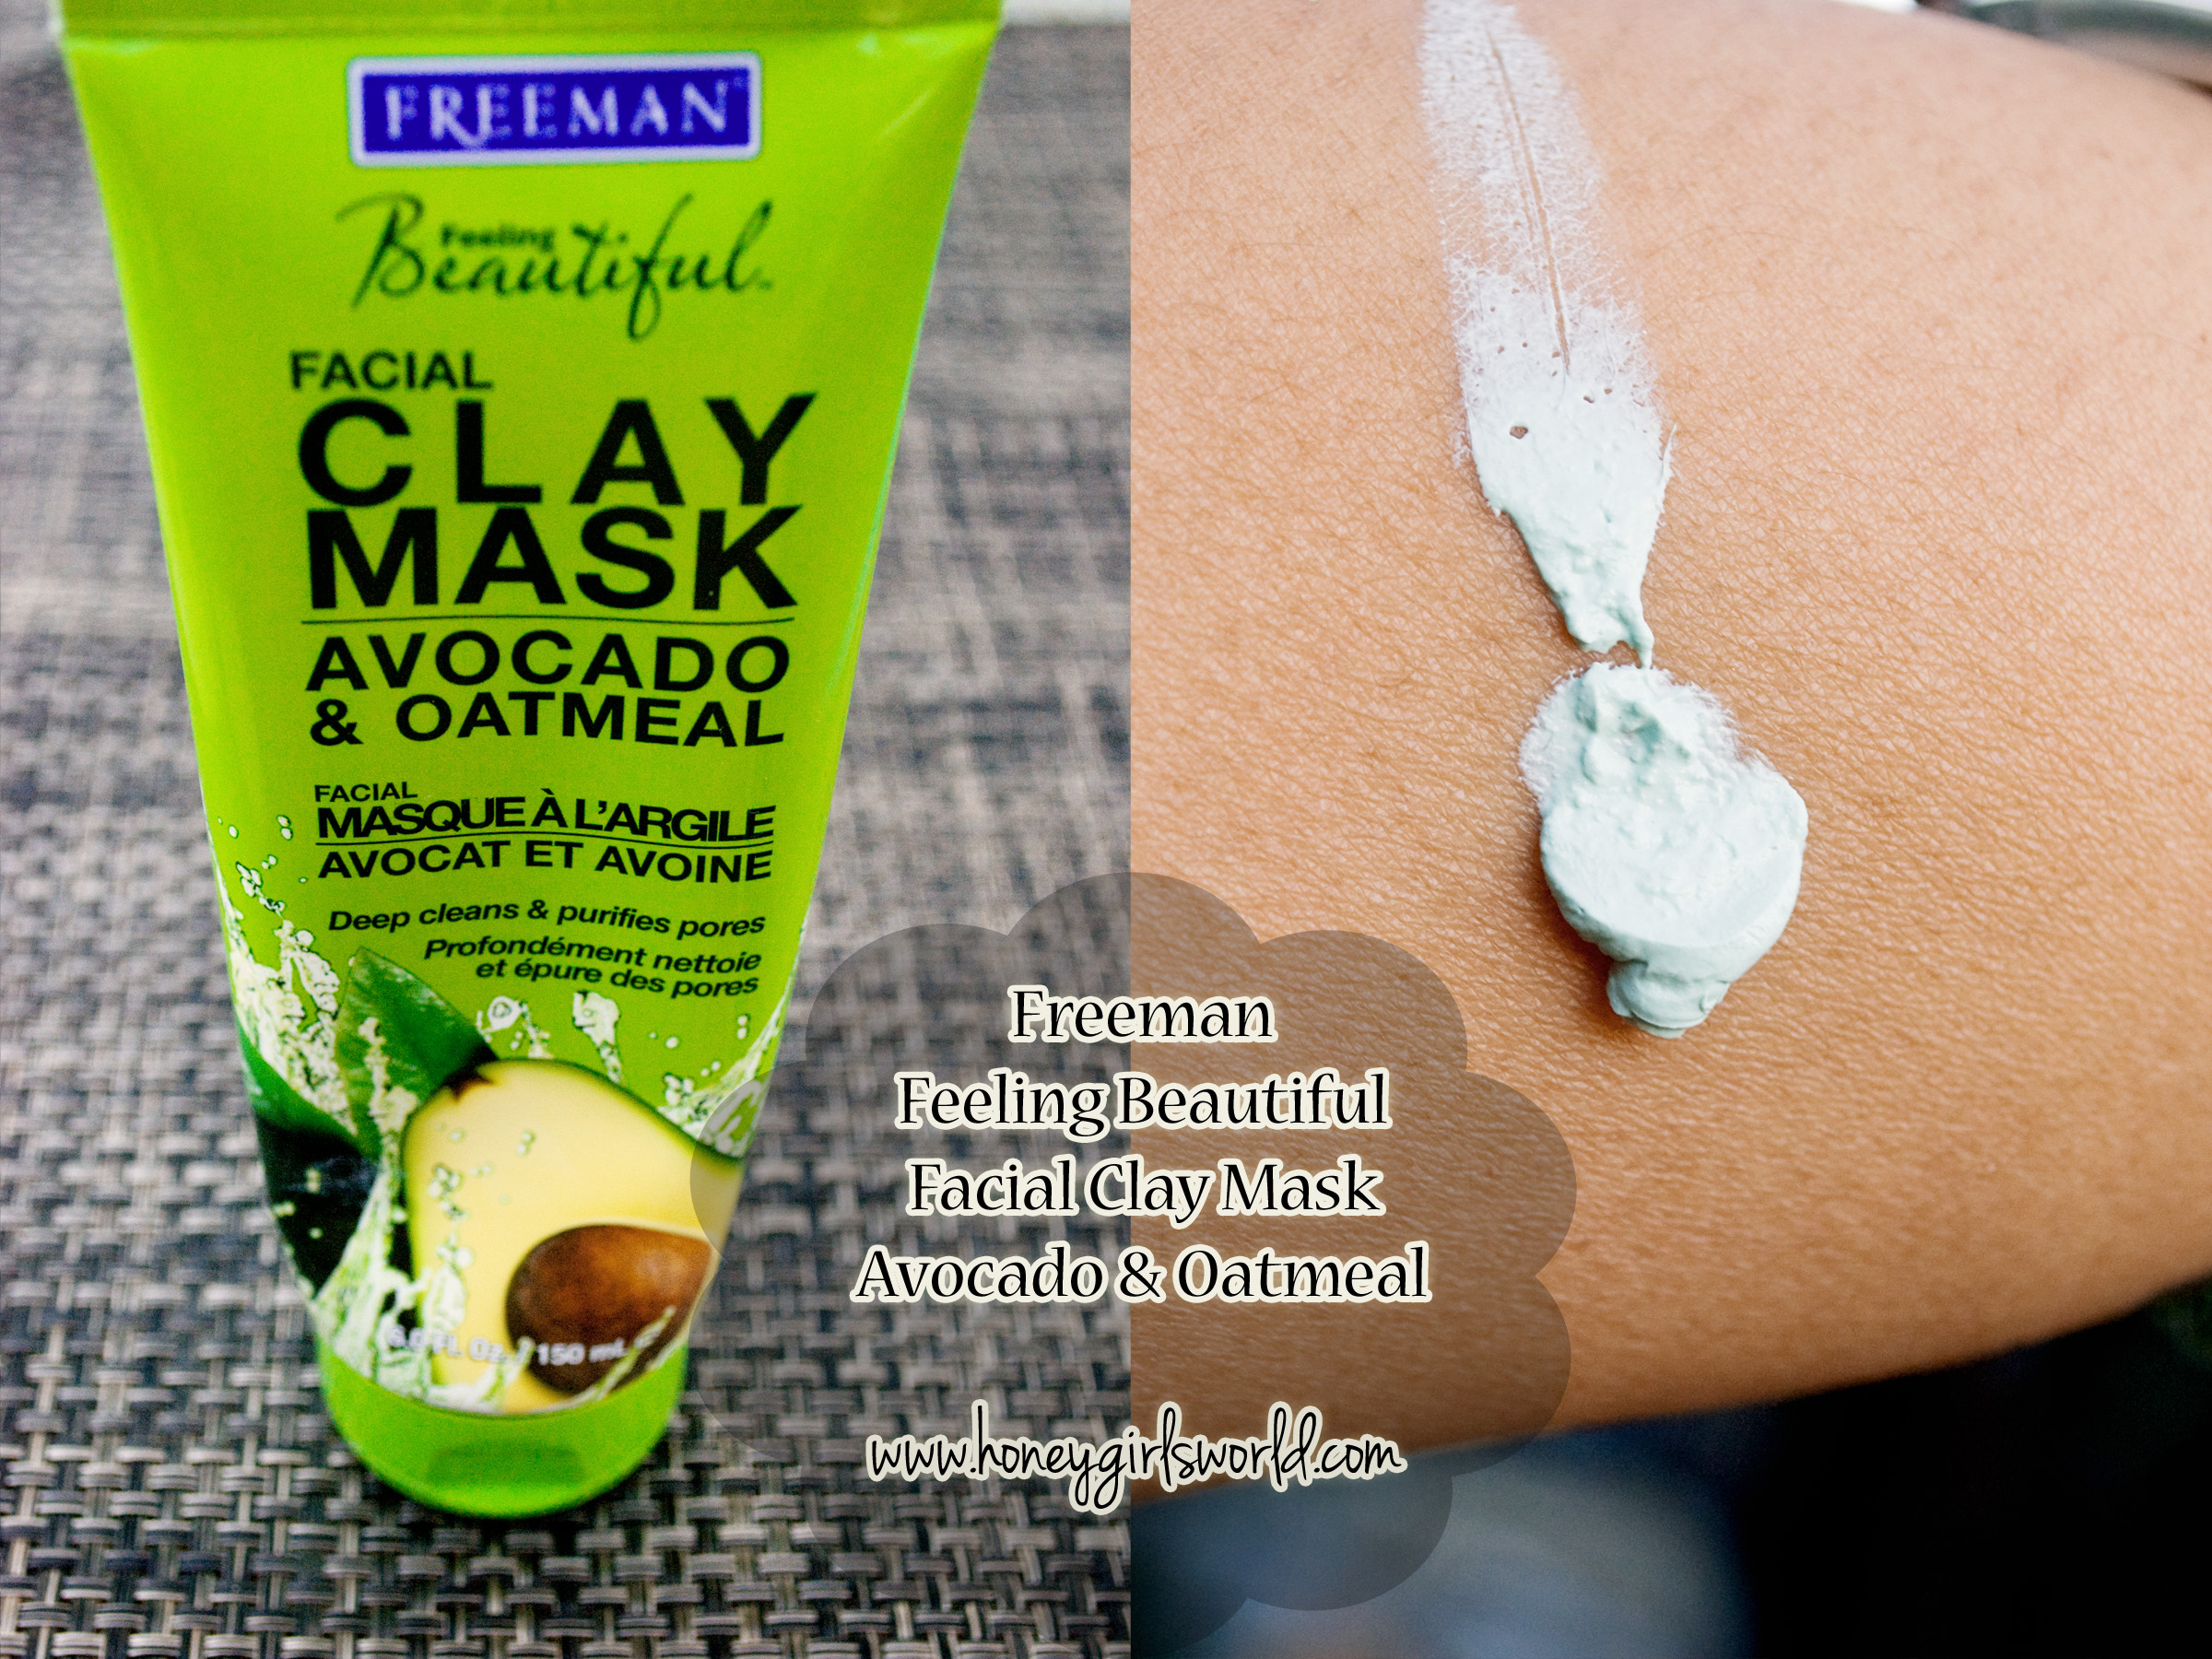 Freeman Avocado and Oatmeal Clay mask 2